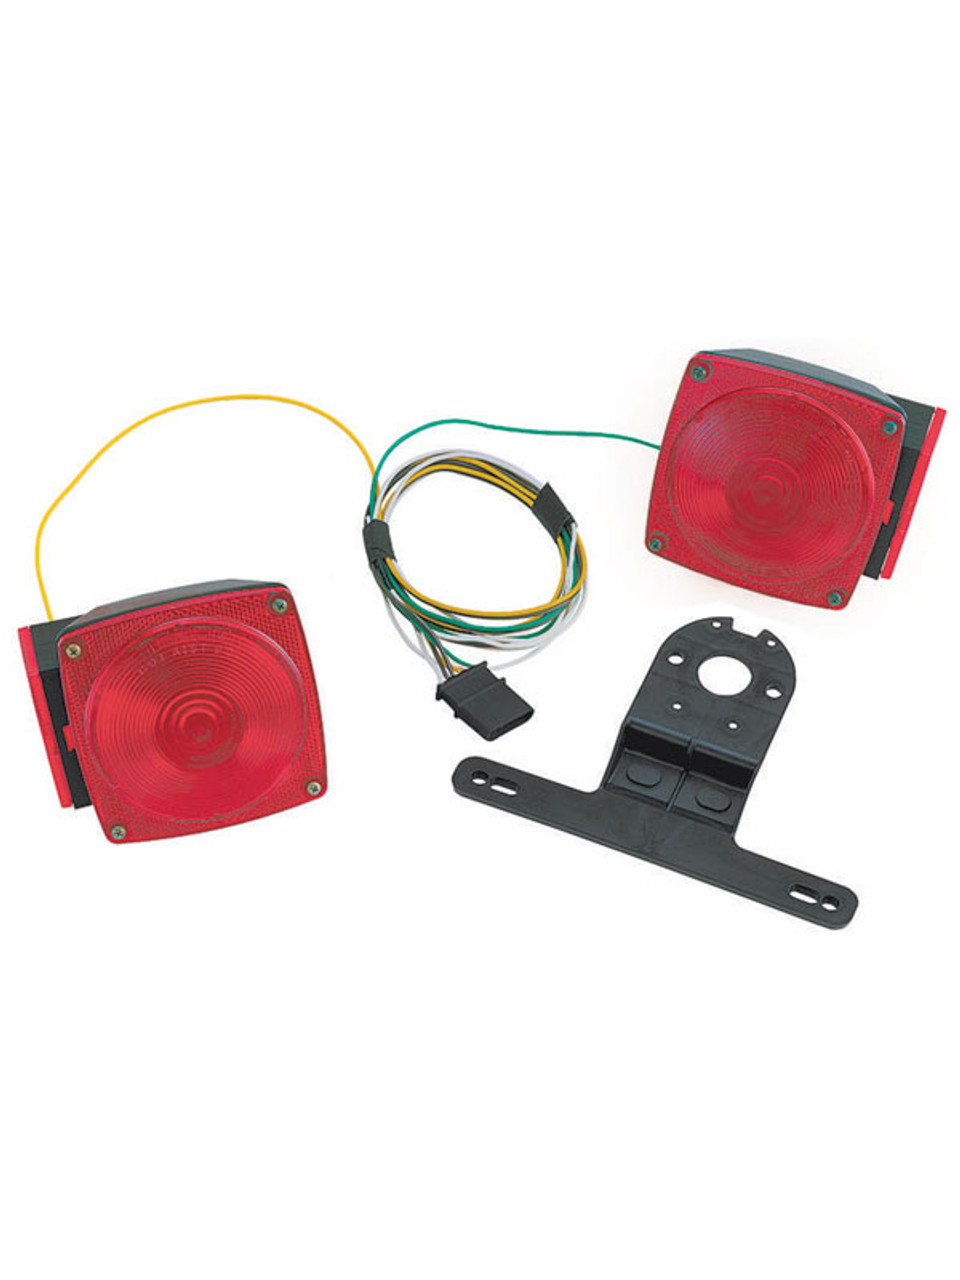 6504 --- Draw-Tite Cargo Carrier Light Kit with License Plate Bracket